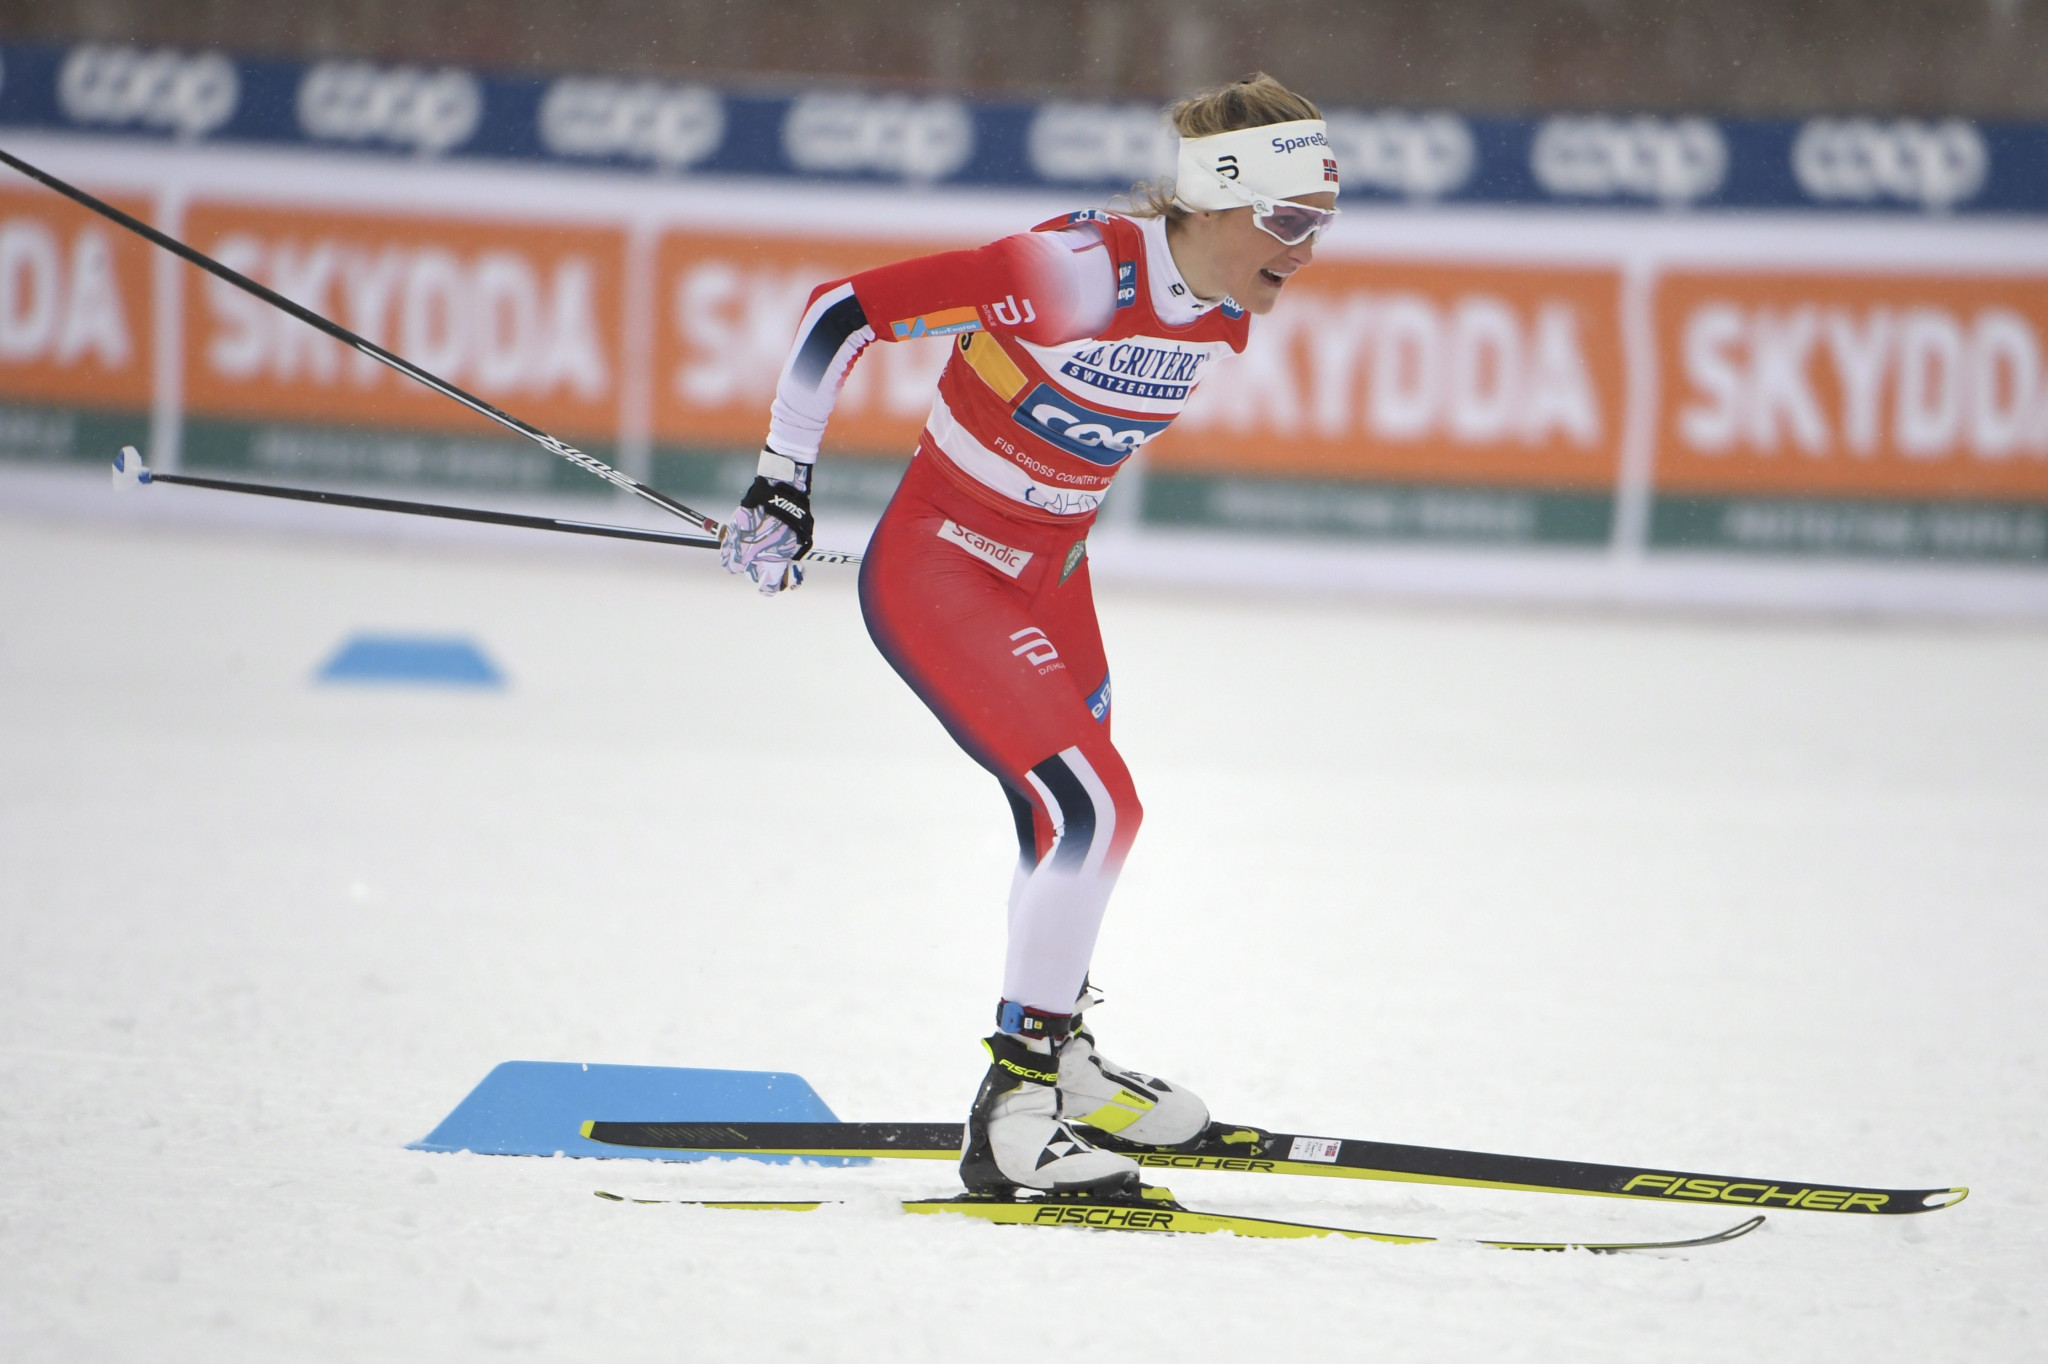 Johaug looking to clinch overall title at home FIS Cross-Country World Cup event in Oslo